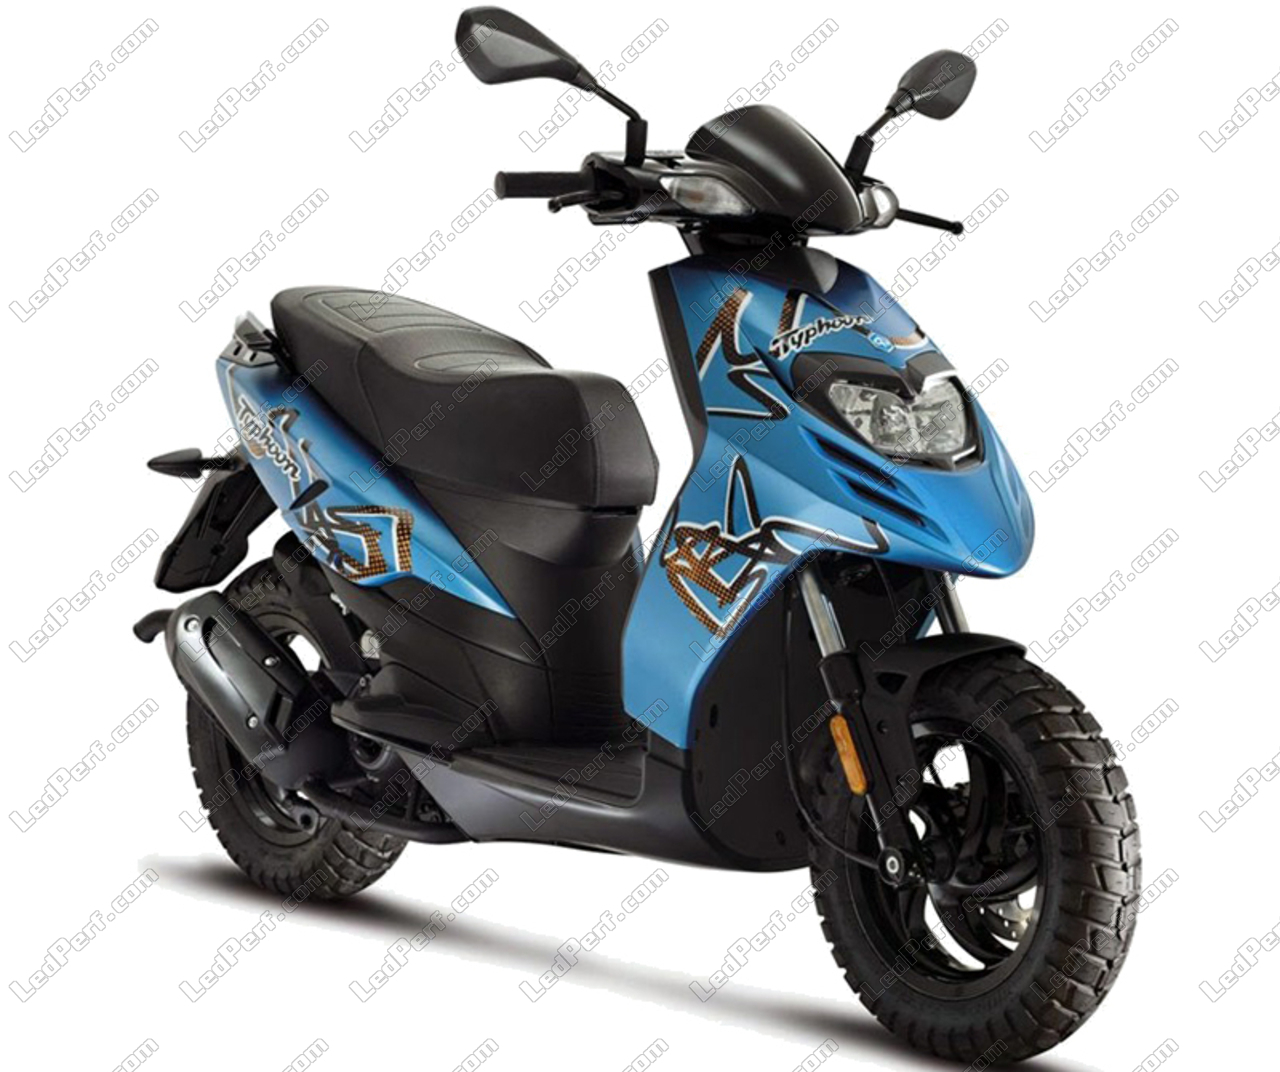 phares additionnels led pour scooter piaggio typhoon 50 2011 2018. Black Bedroom Furniture Sets. Home Design Ideas